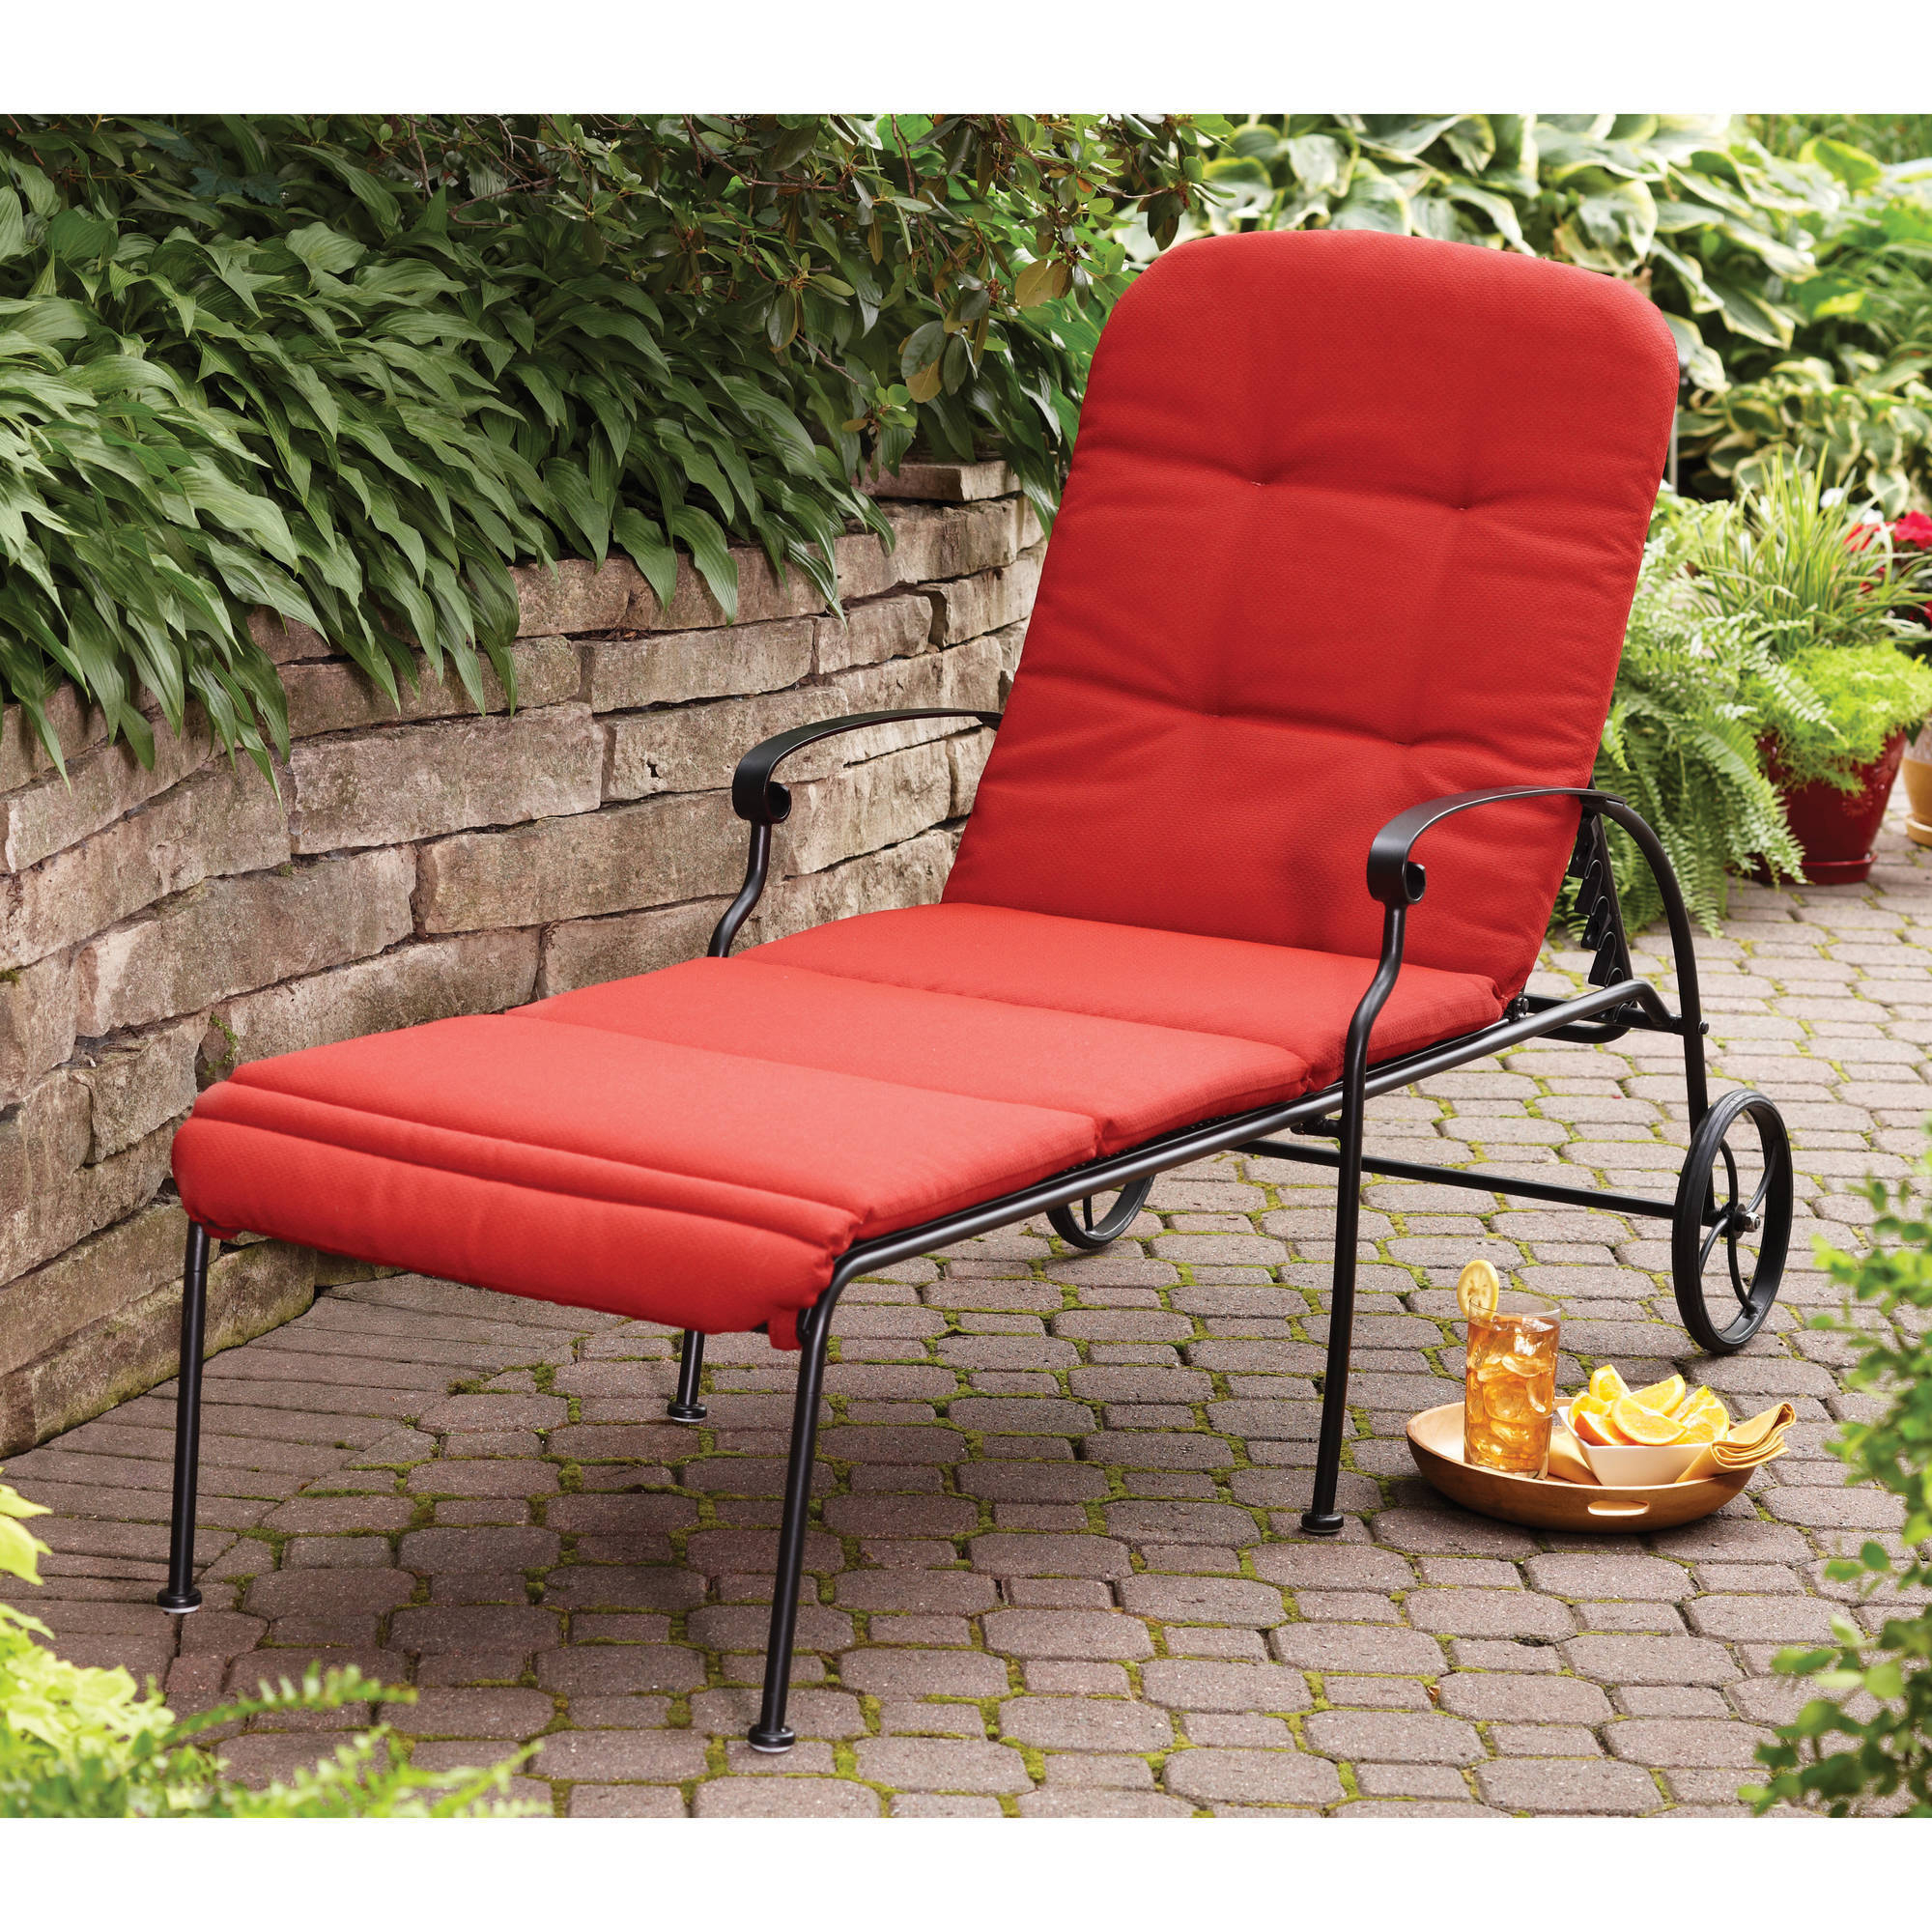 Most Recently Released Better Homes & Gardens Clayton Court Chaise Lounge With Wheels, Red Within Cart Wheel Adjustable Chaise Lounge Chairs (Gallery 22 of 25)